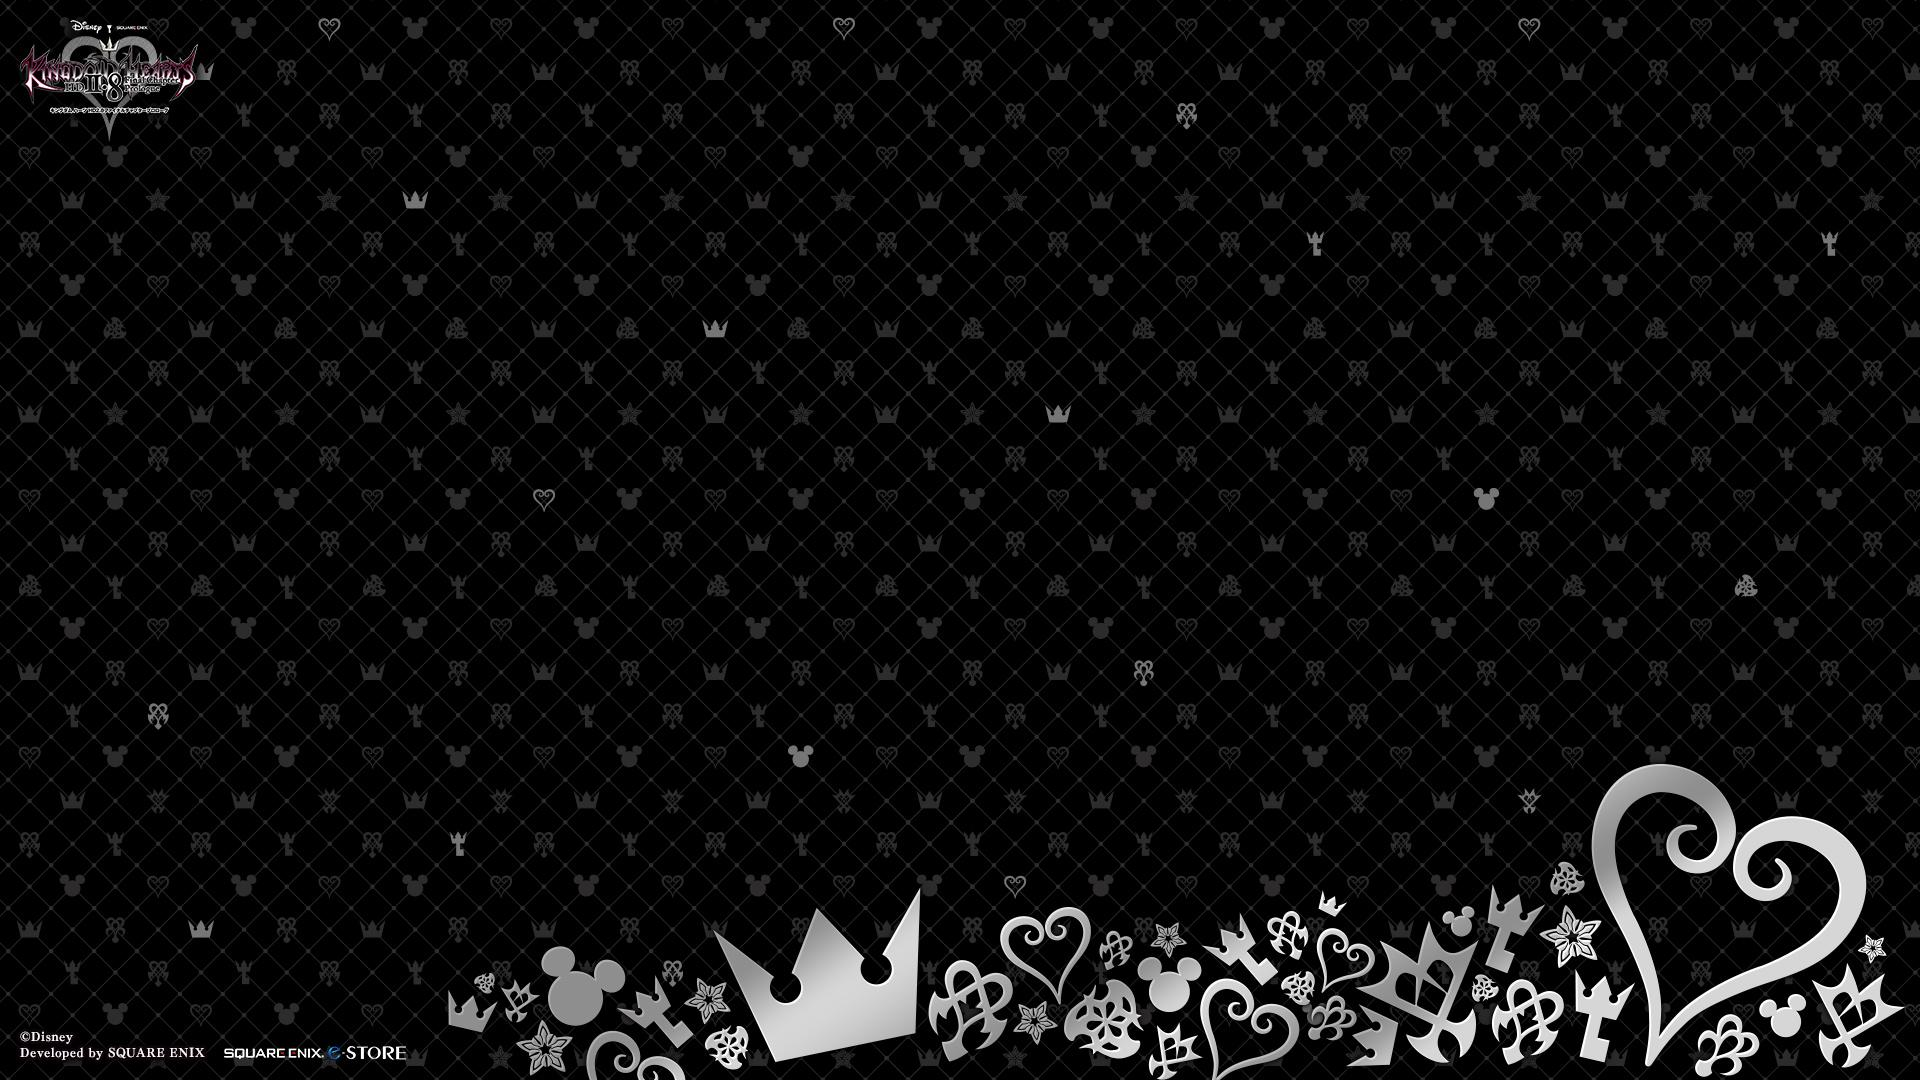 Kingdom Heart Wallpaper Posted By Ethan Cunningham